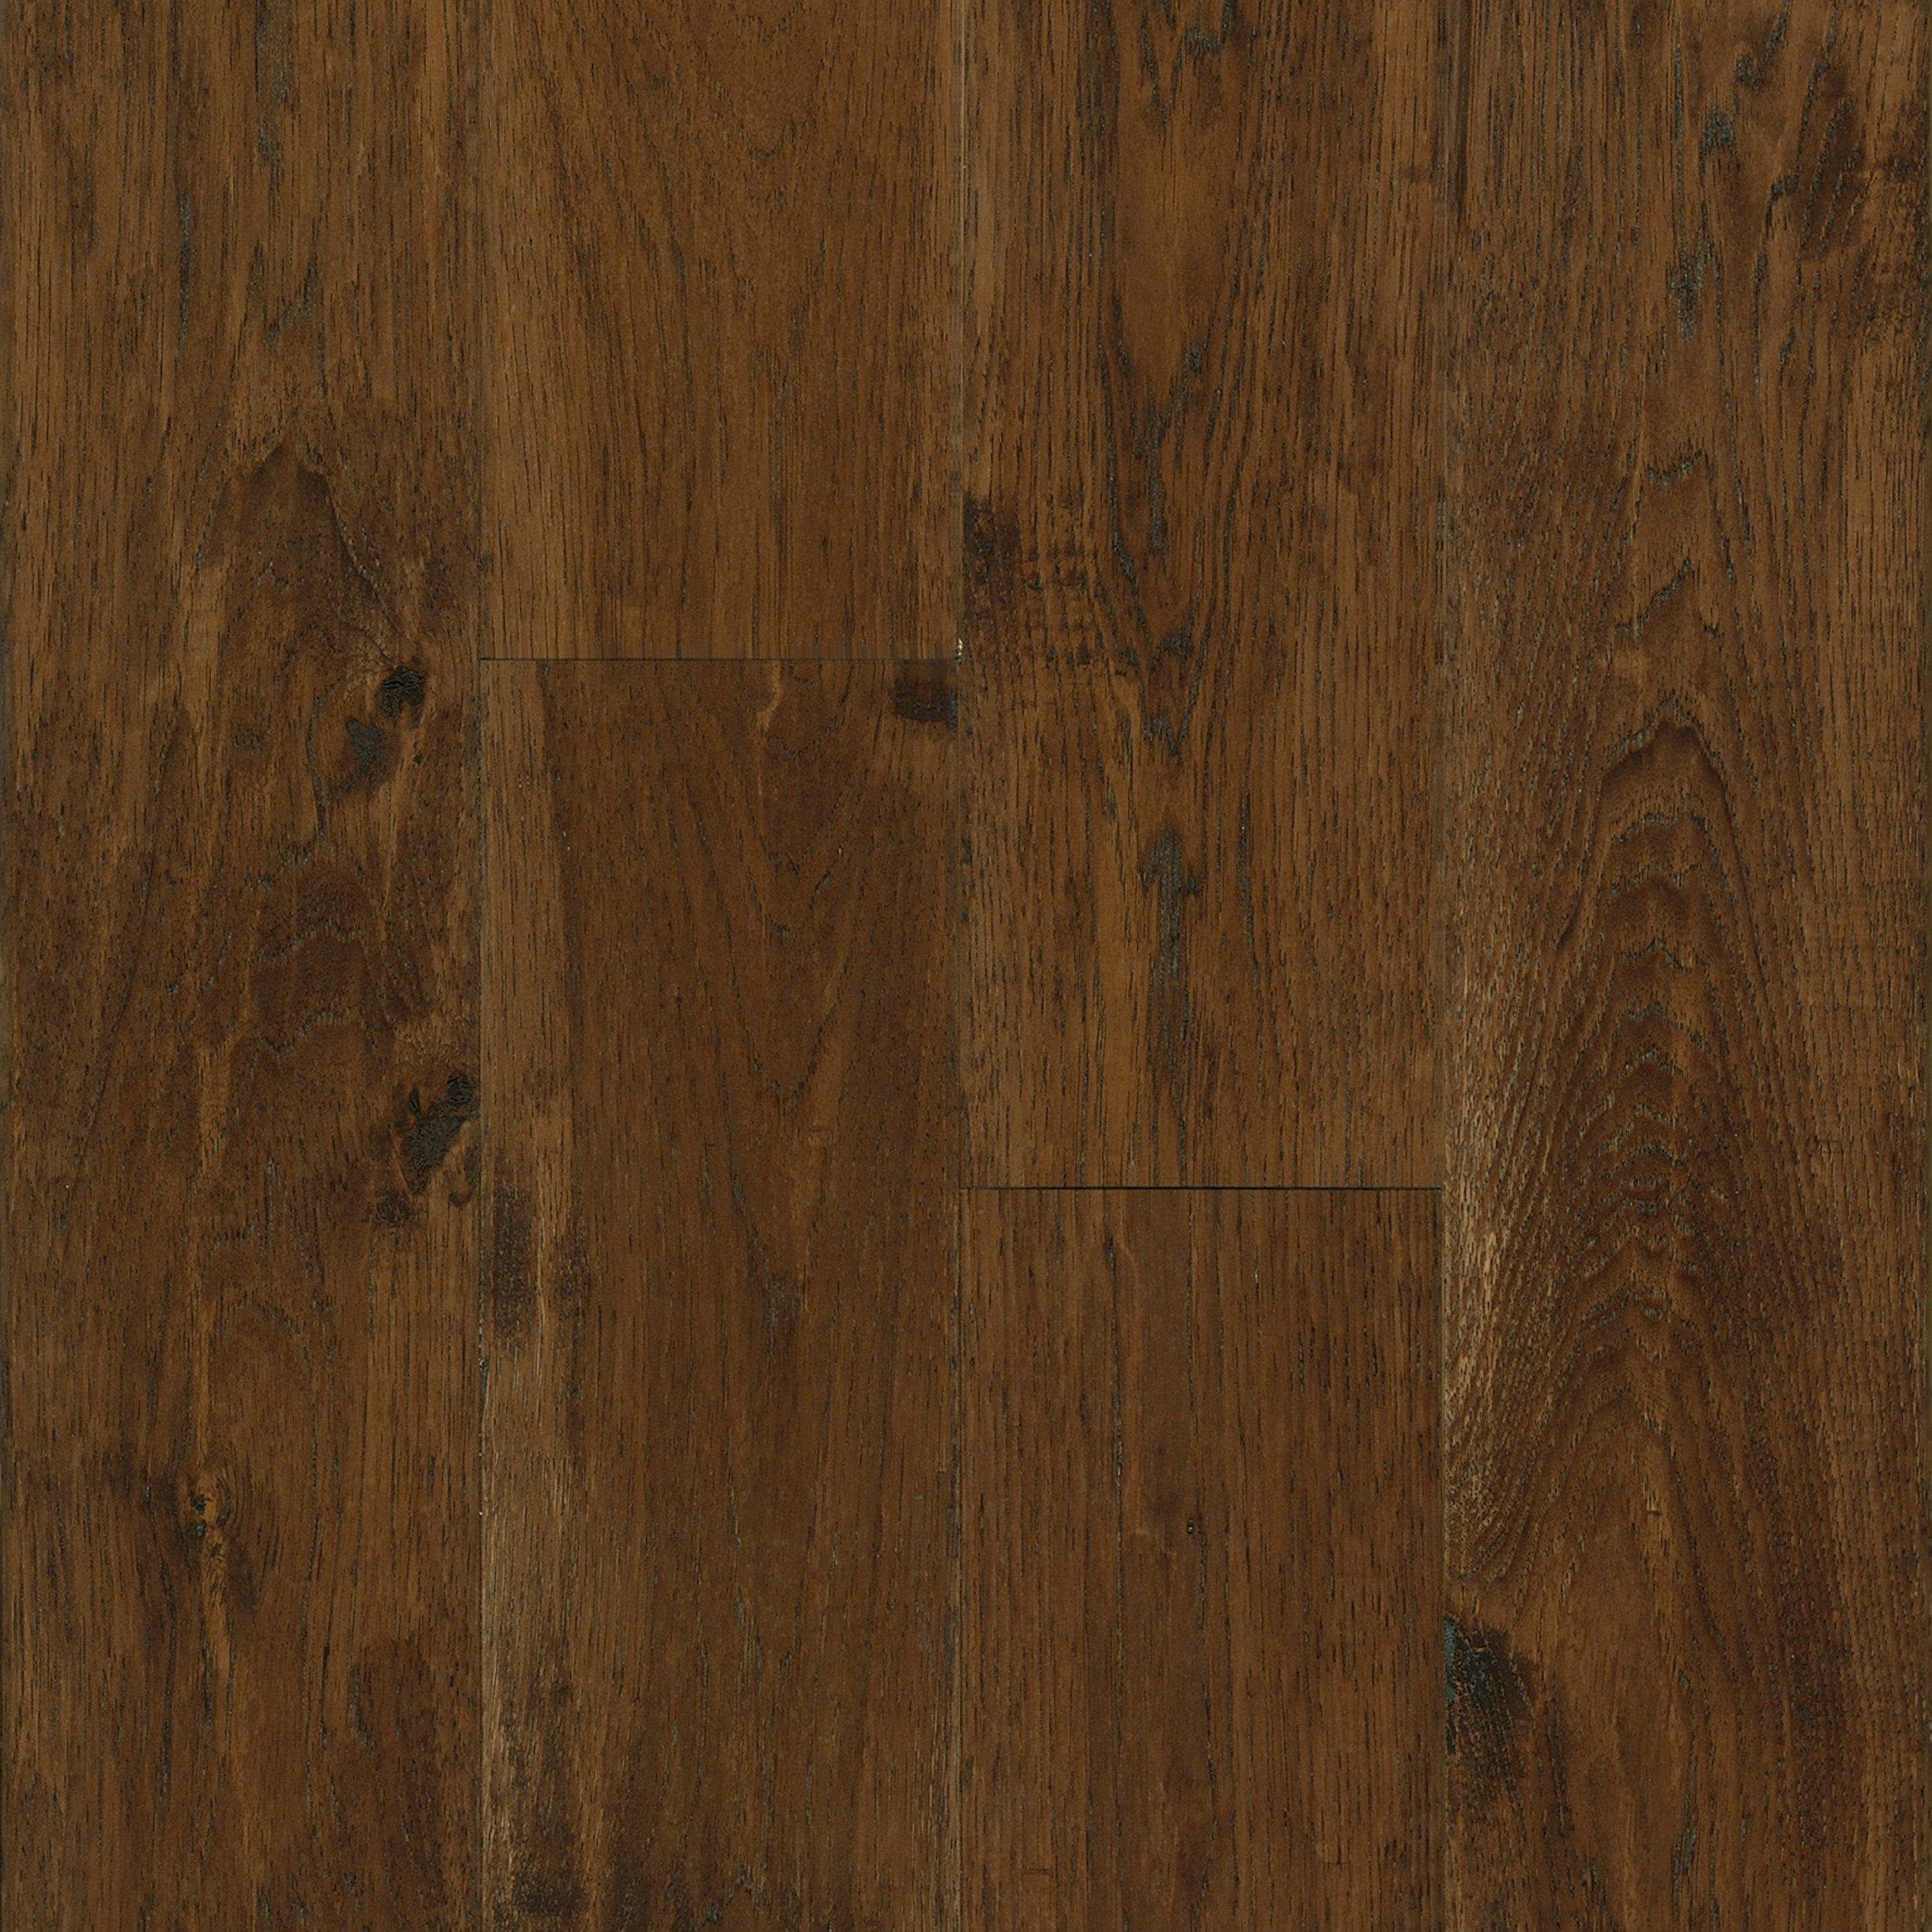 hse lg rs scraped walnut hardwood flooring floor hand natural brown floors american